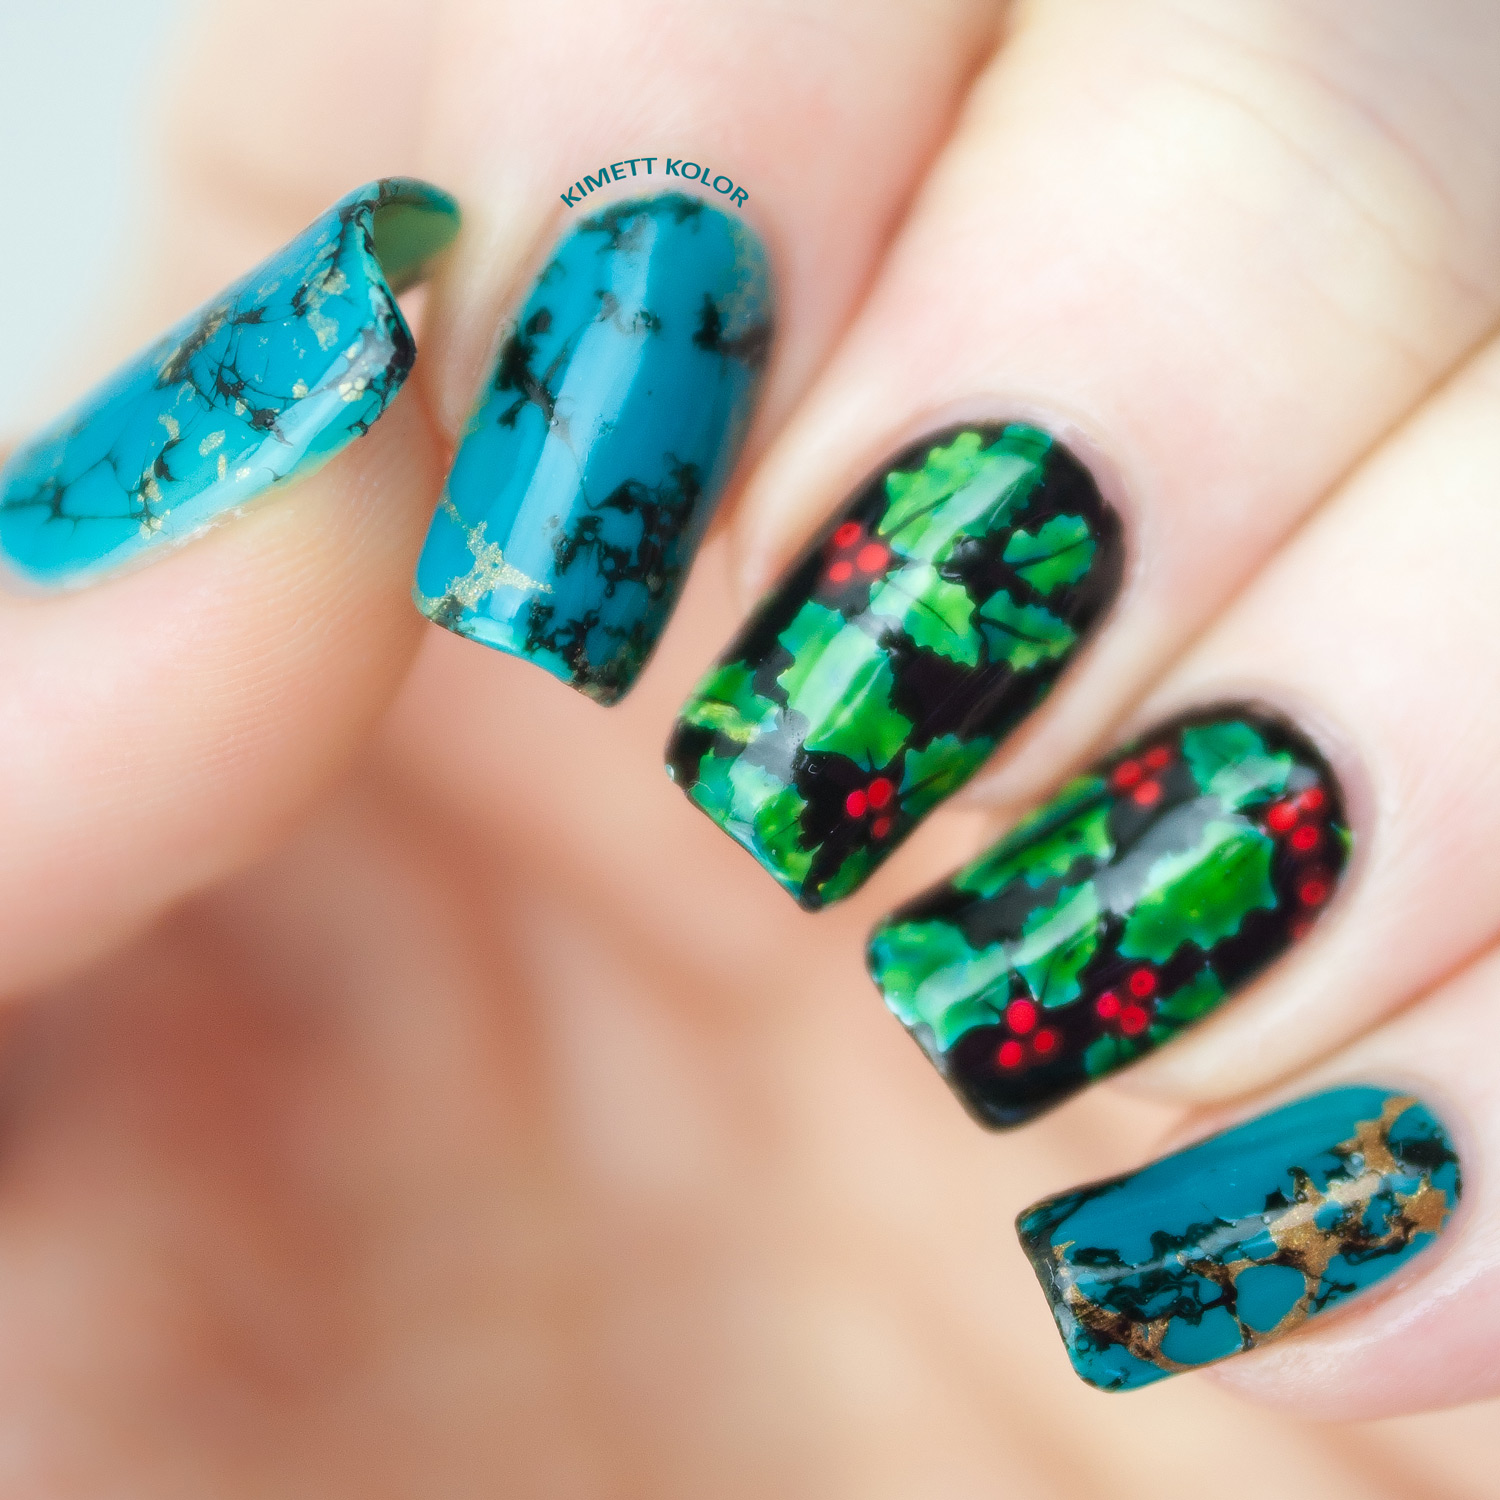 Turquoise and Holly December Nail Art by KimettKolor